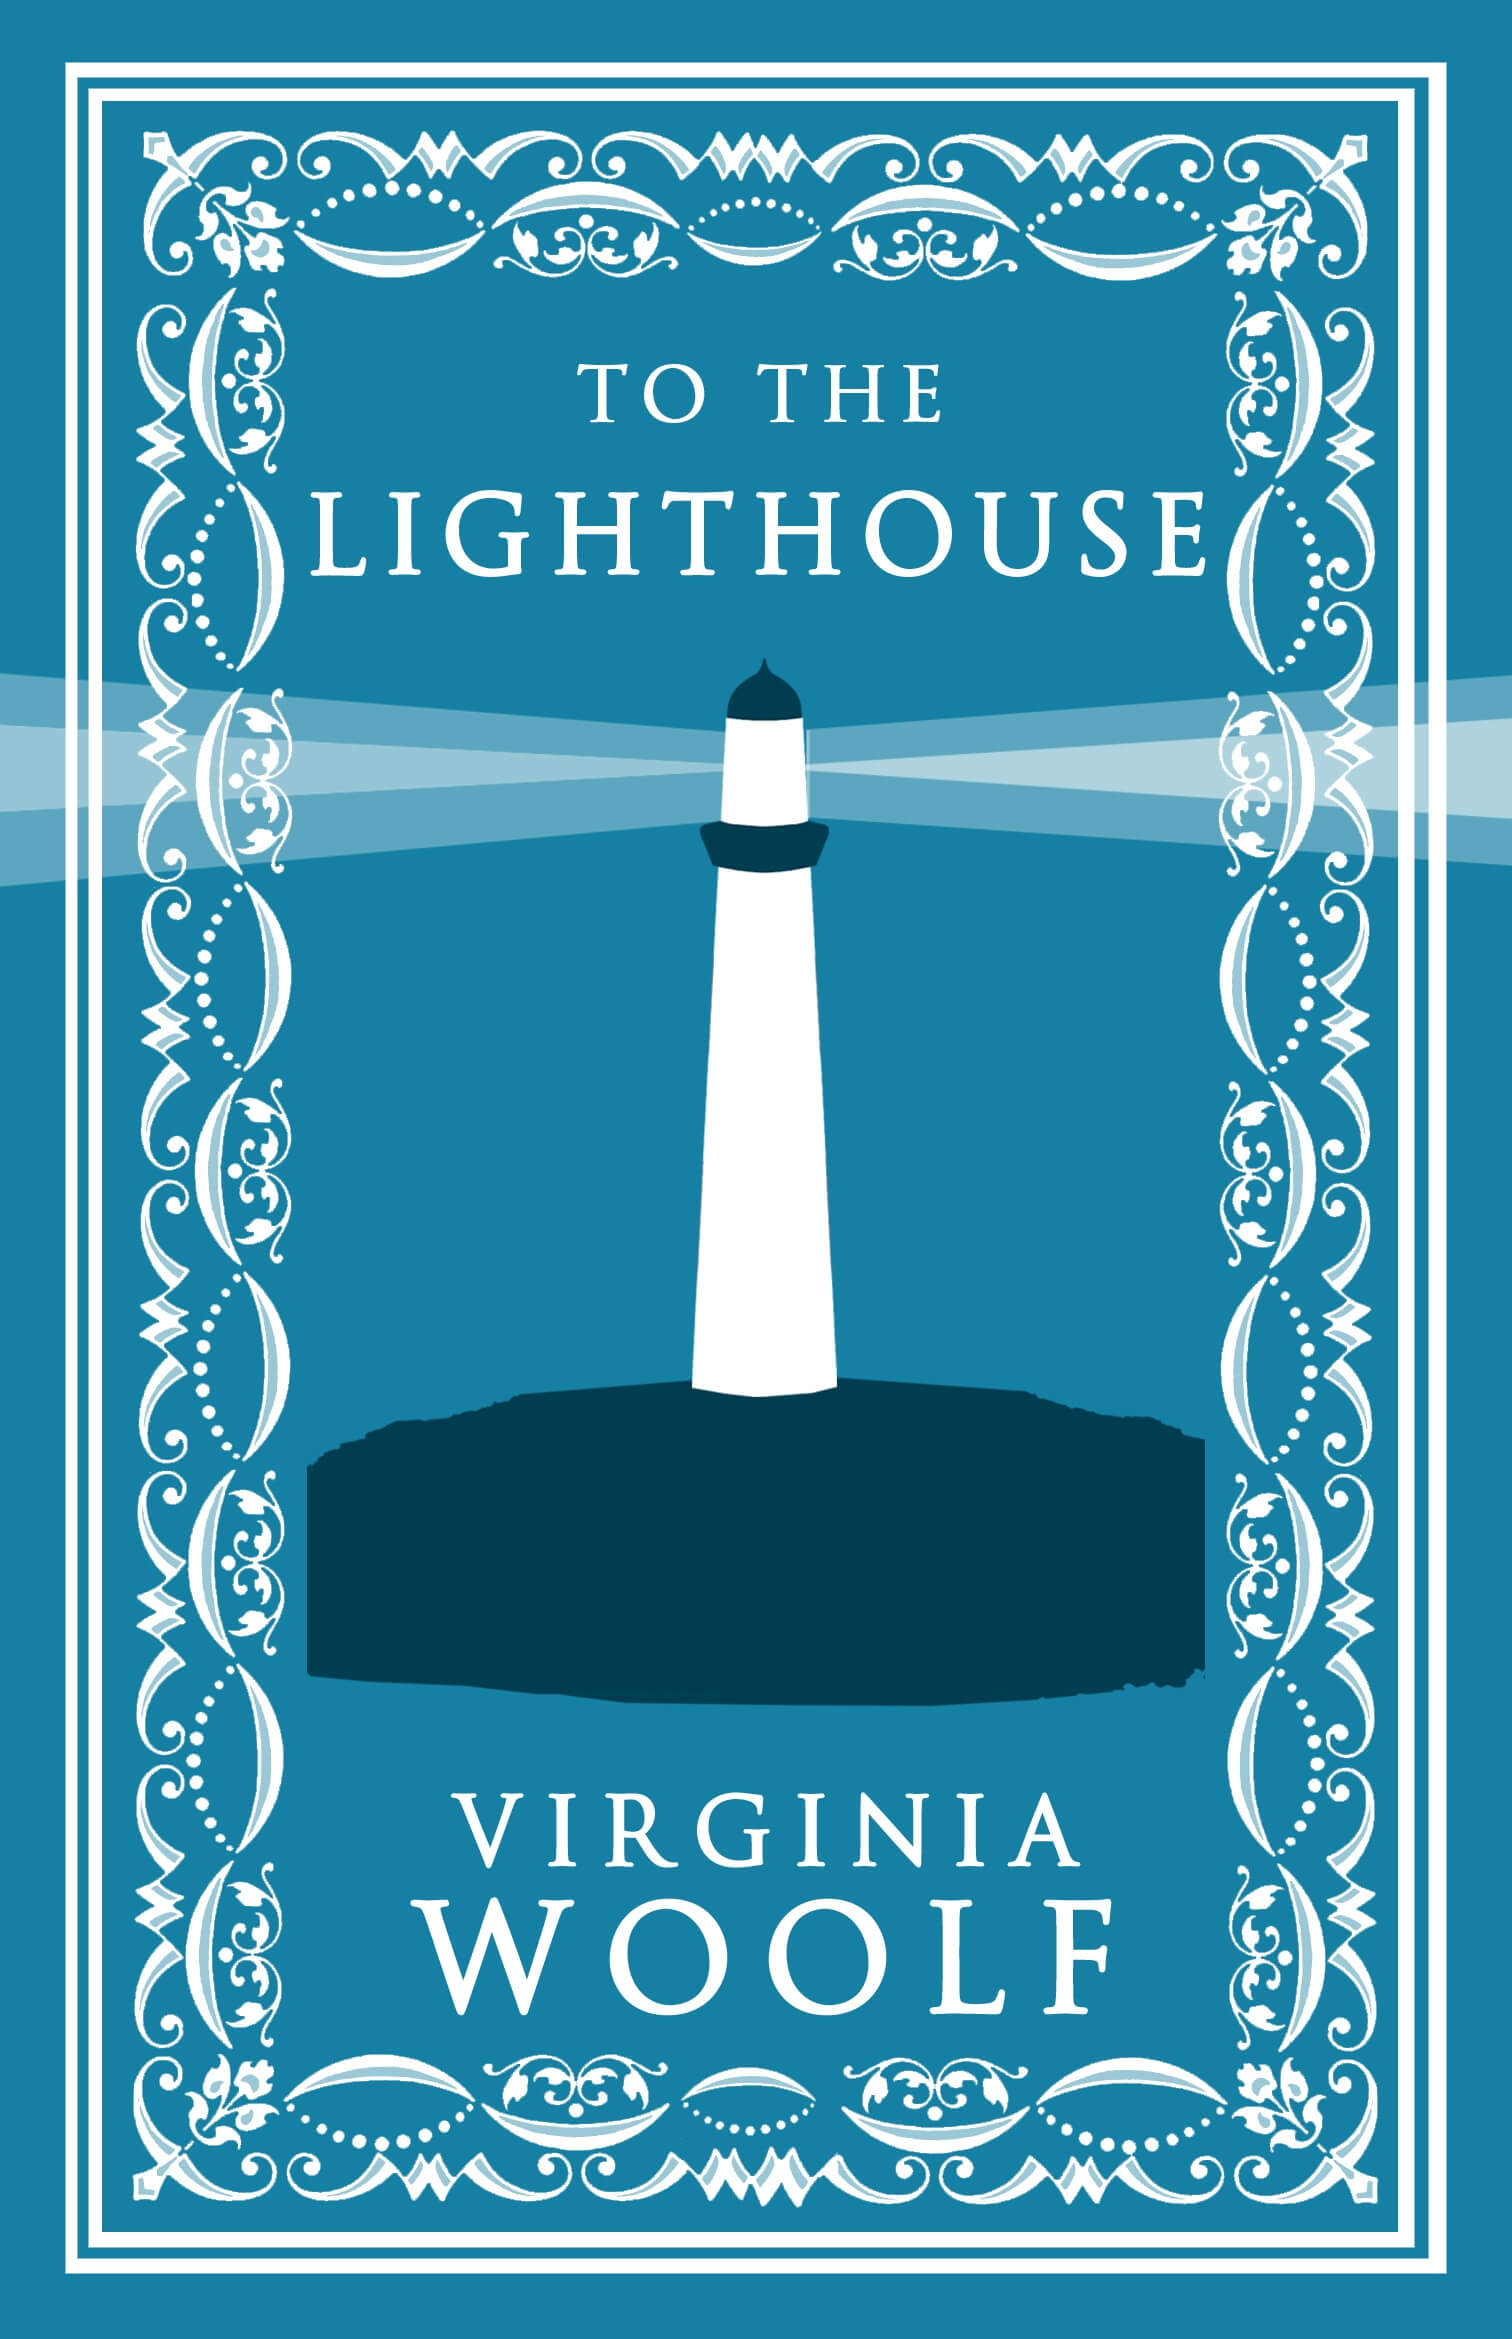 To the Lighthouse Novel by Virginia Woolf